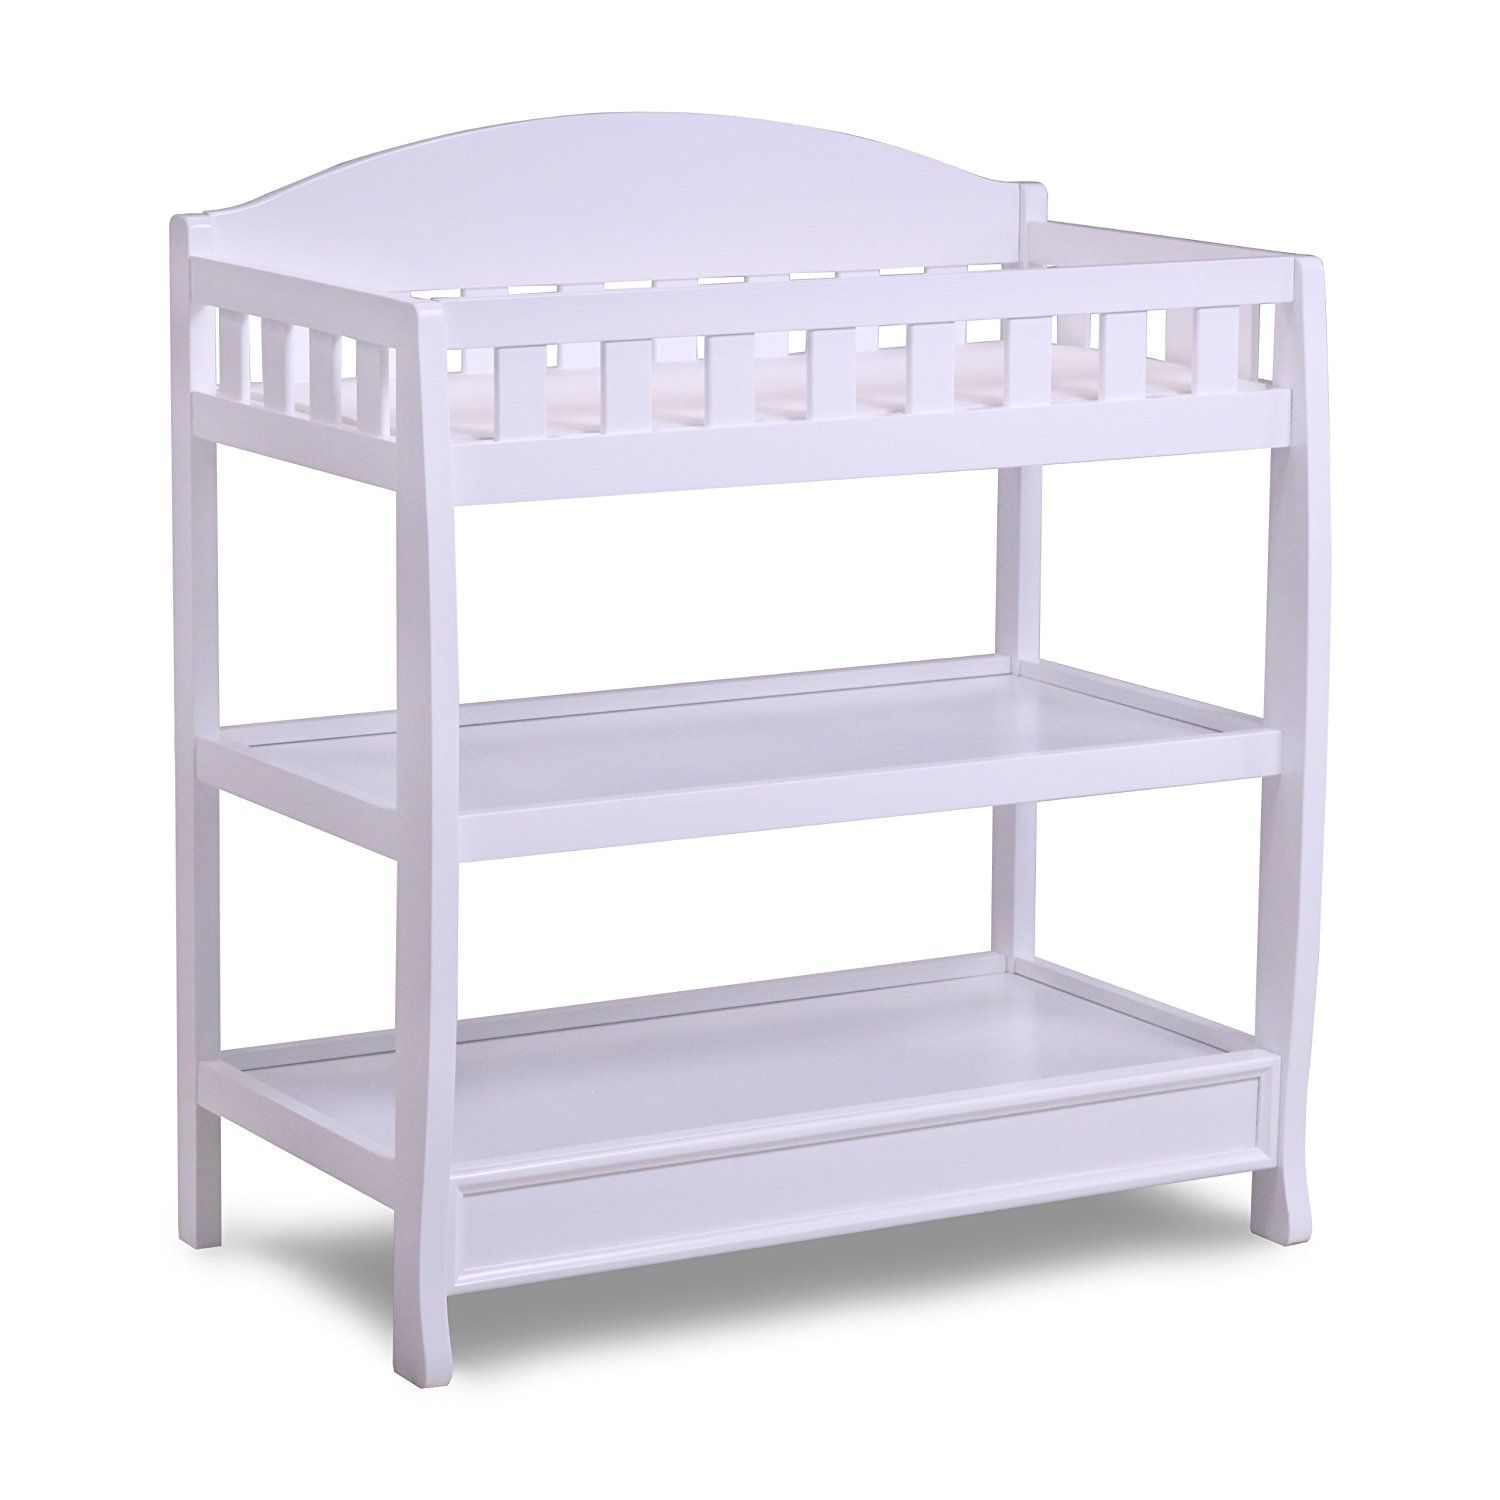 delta children infant changing table with pad, white XLJRENJ